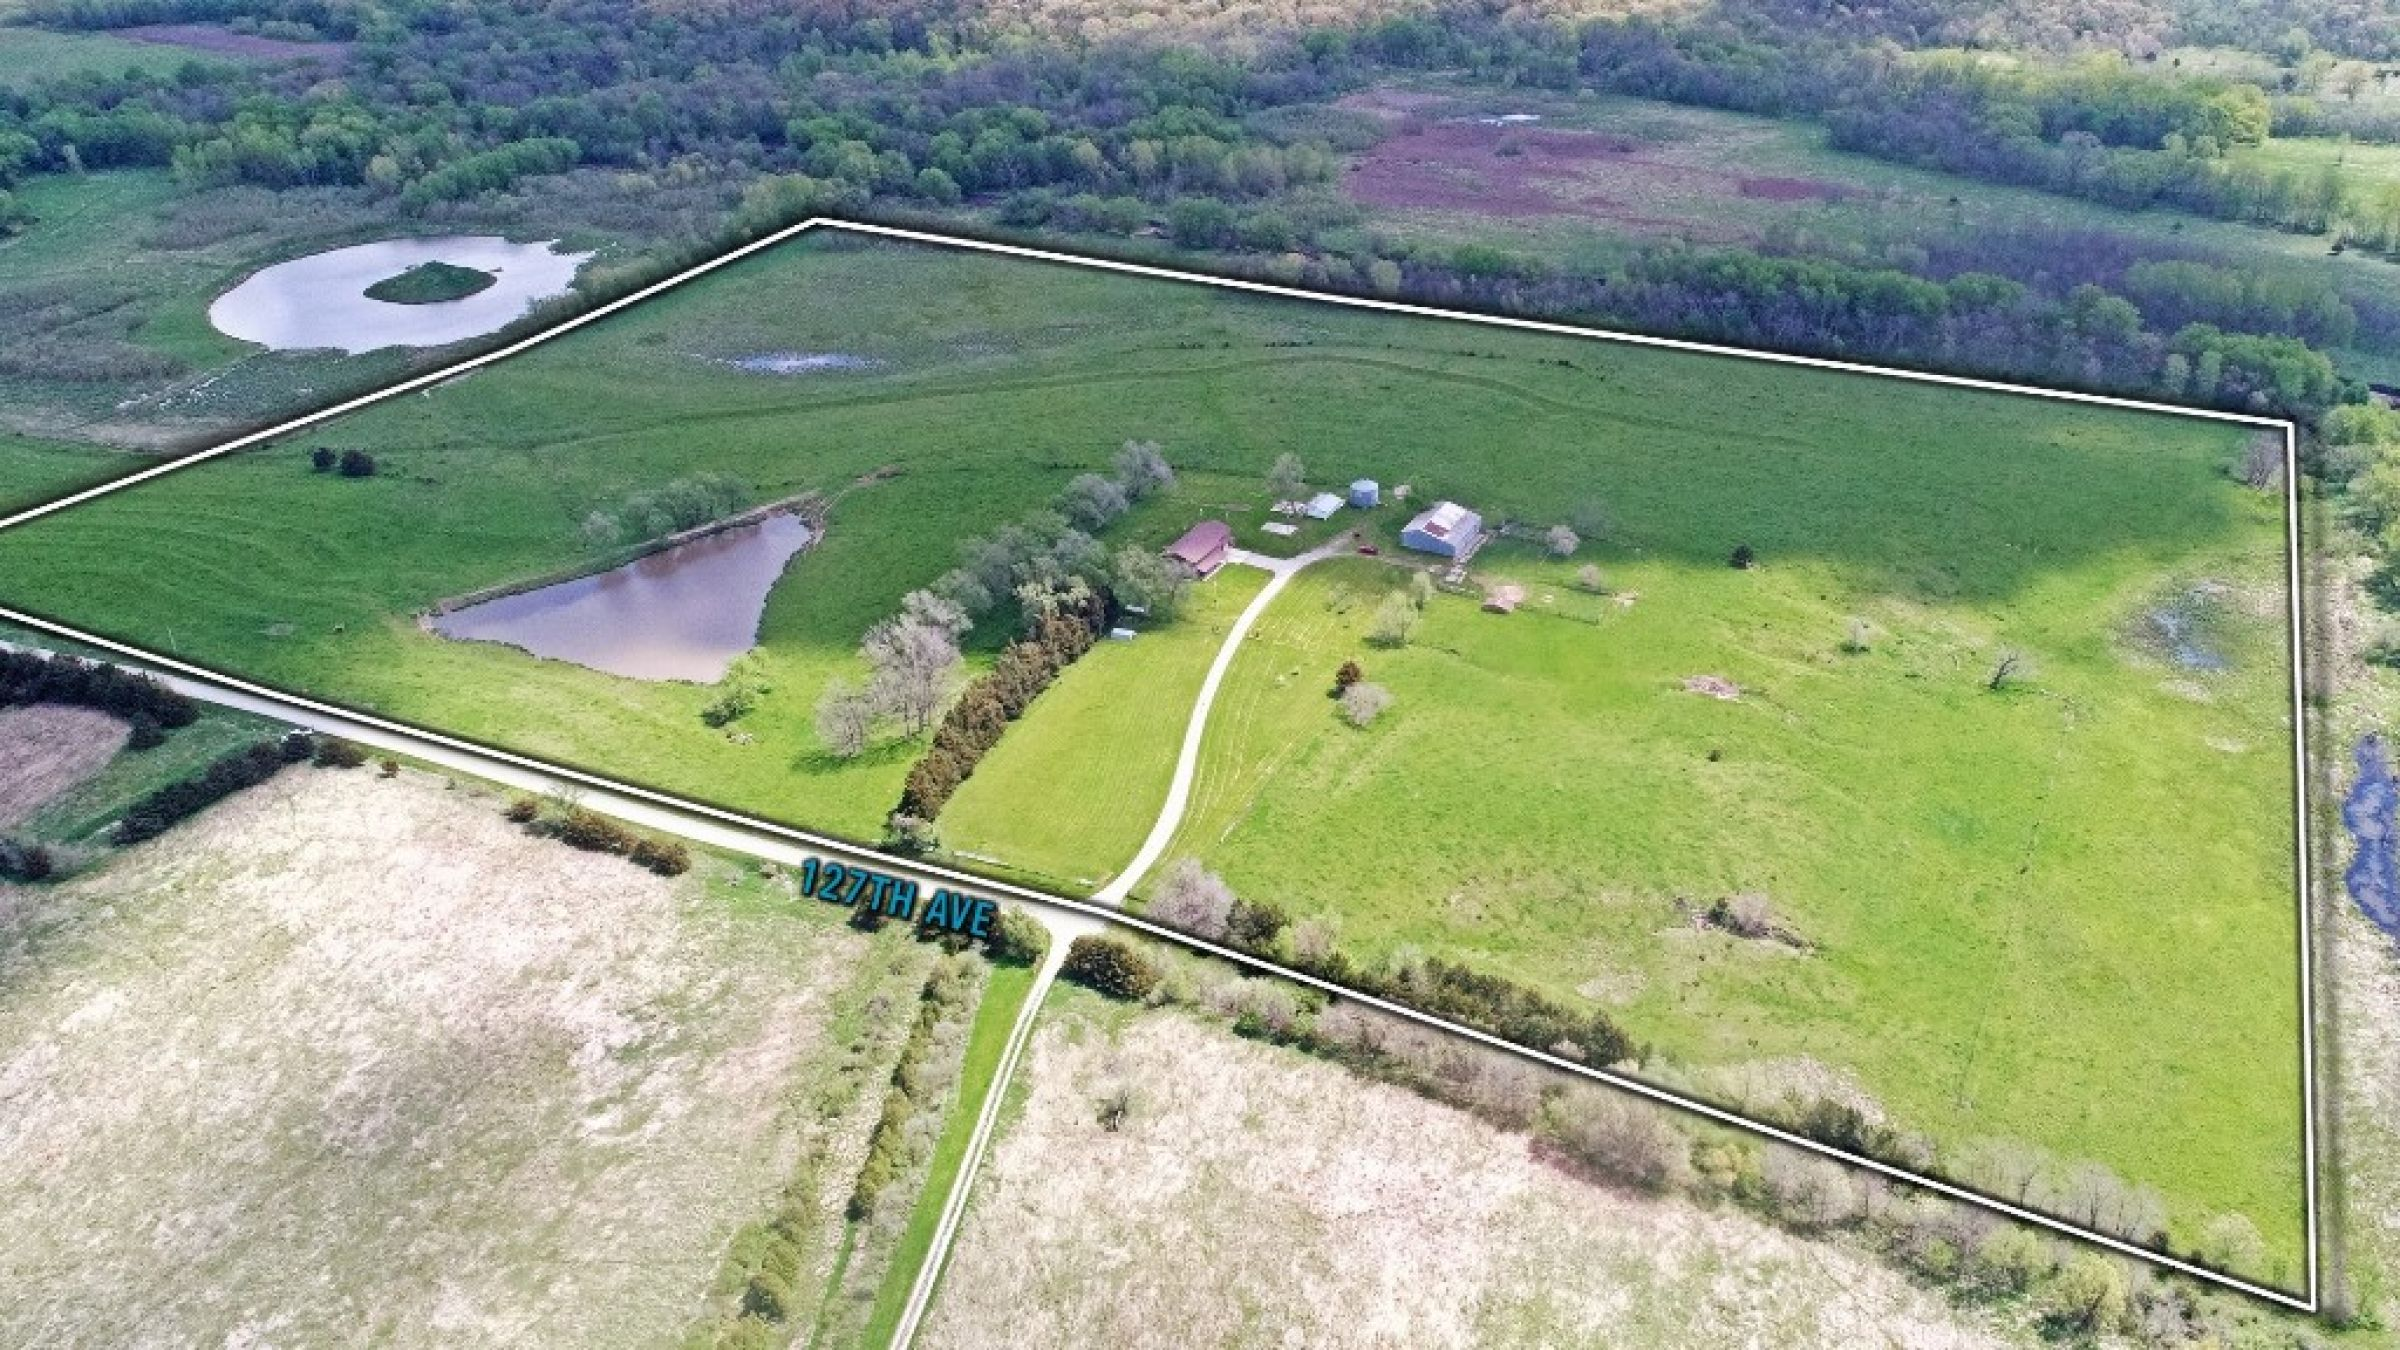 residential-lucas-county-iowa-60-acres-listing-number-14939-0-2020-05-07-165642.jpg